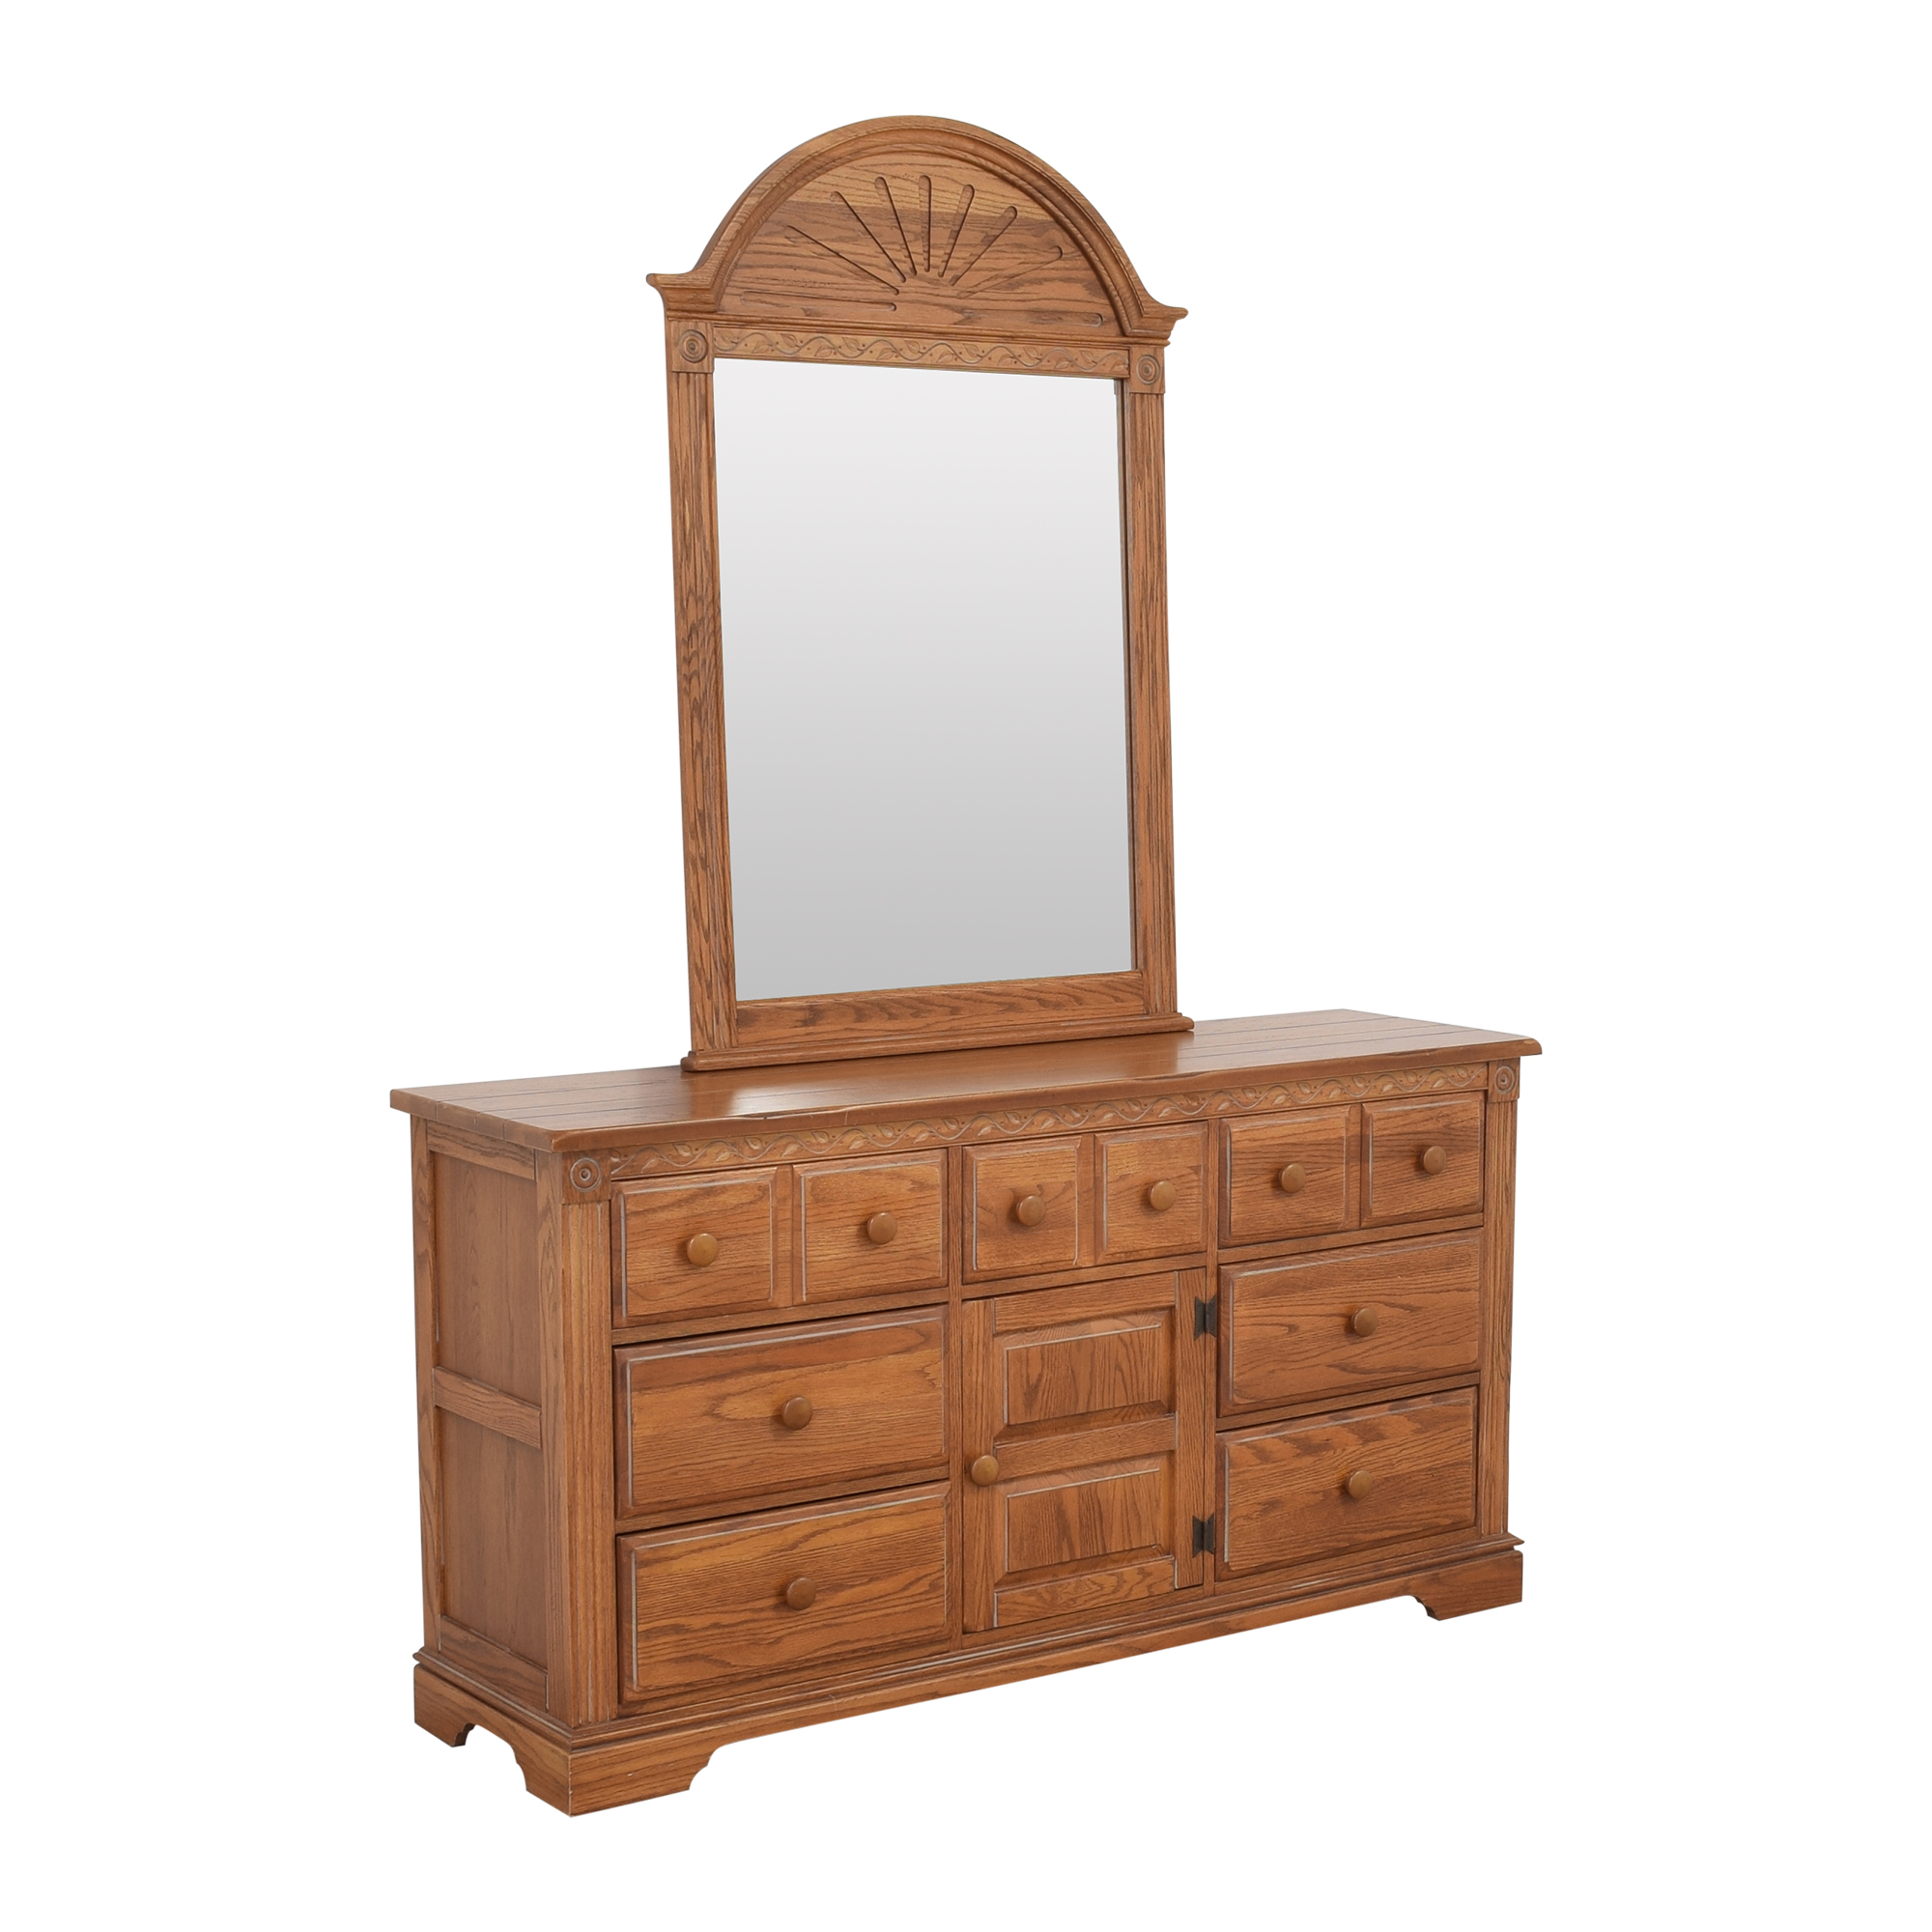 Broyhill Furniture Broyhill Door Dresser with Mirror for sale